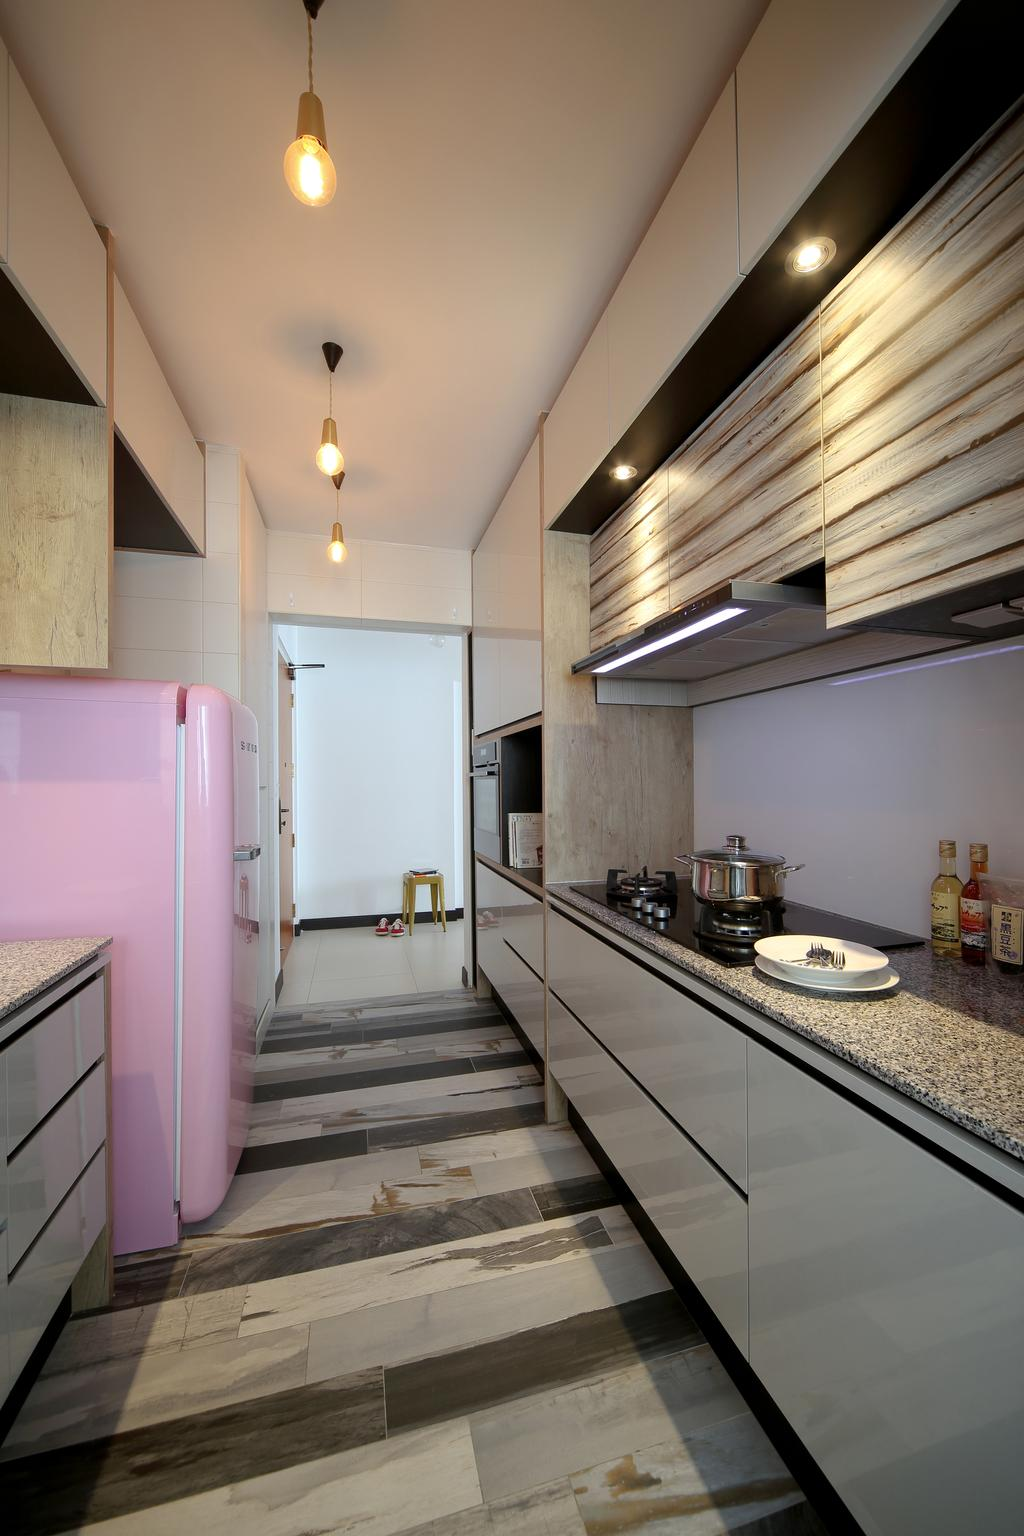 Eclectic, HDB, Kitchen, Tampines (Block 869B), Interior Designer, The Scientist, Kitchen Counter, Gallery Kitchen, Countertop, Stripes, Angular Lines, Grey, Industrial Lamp, Appliance, Electrical Device, Fridge, Refrigerator, Building, Housing, Indoors